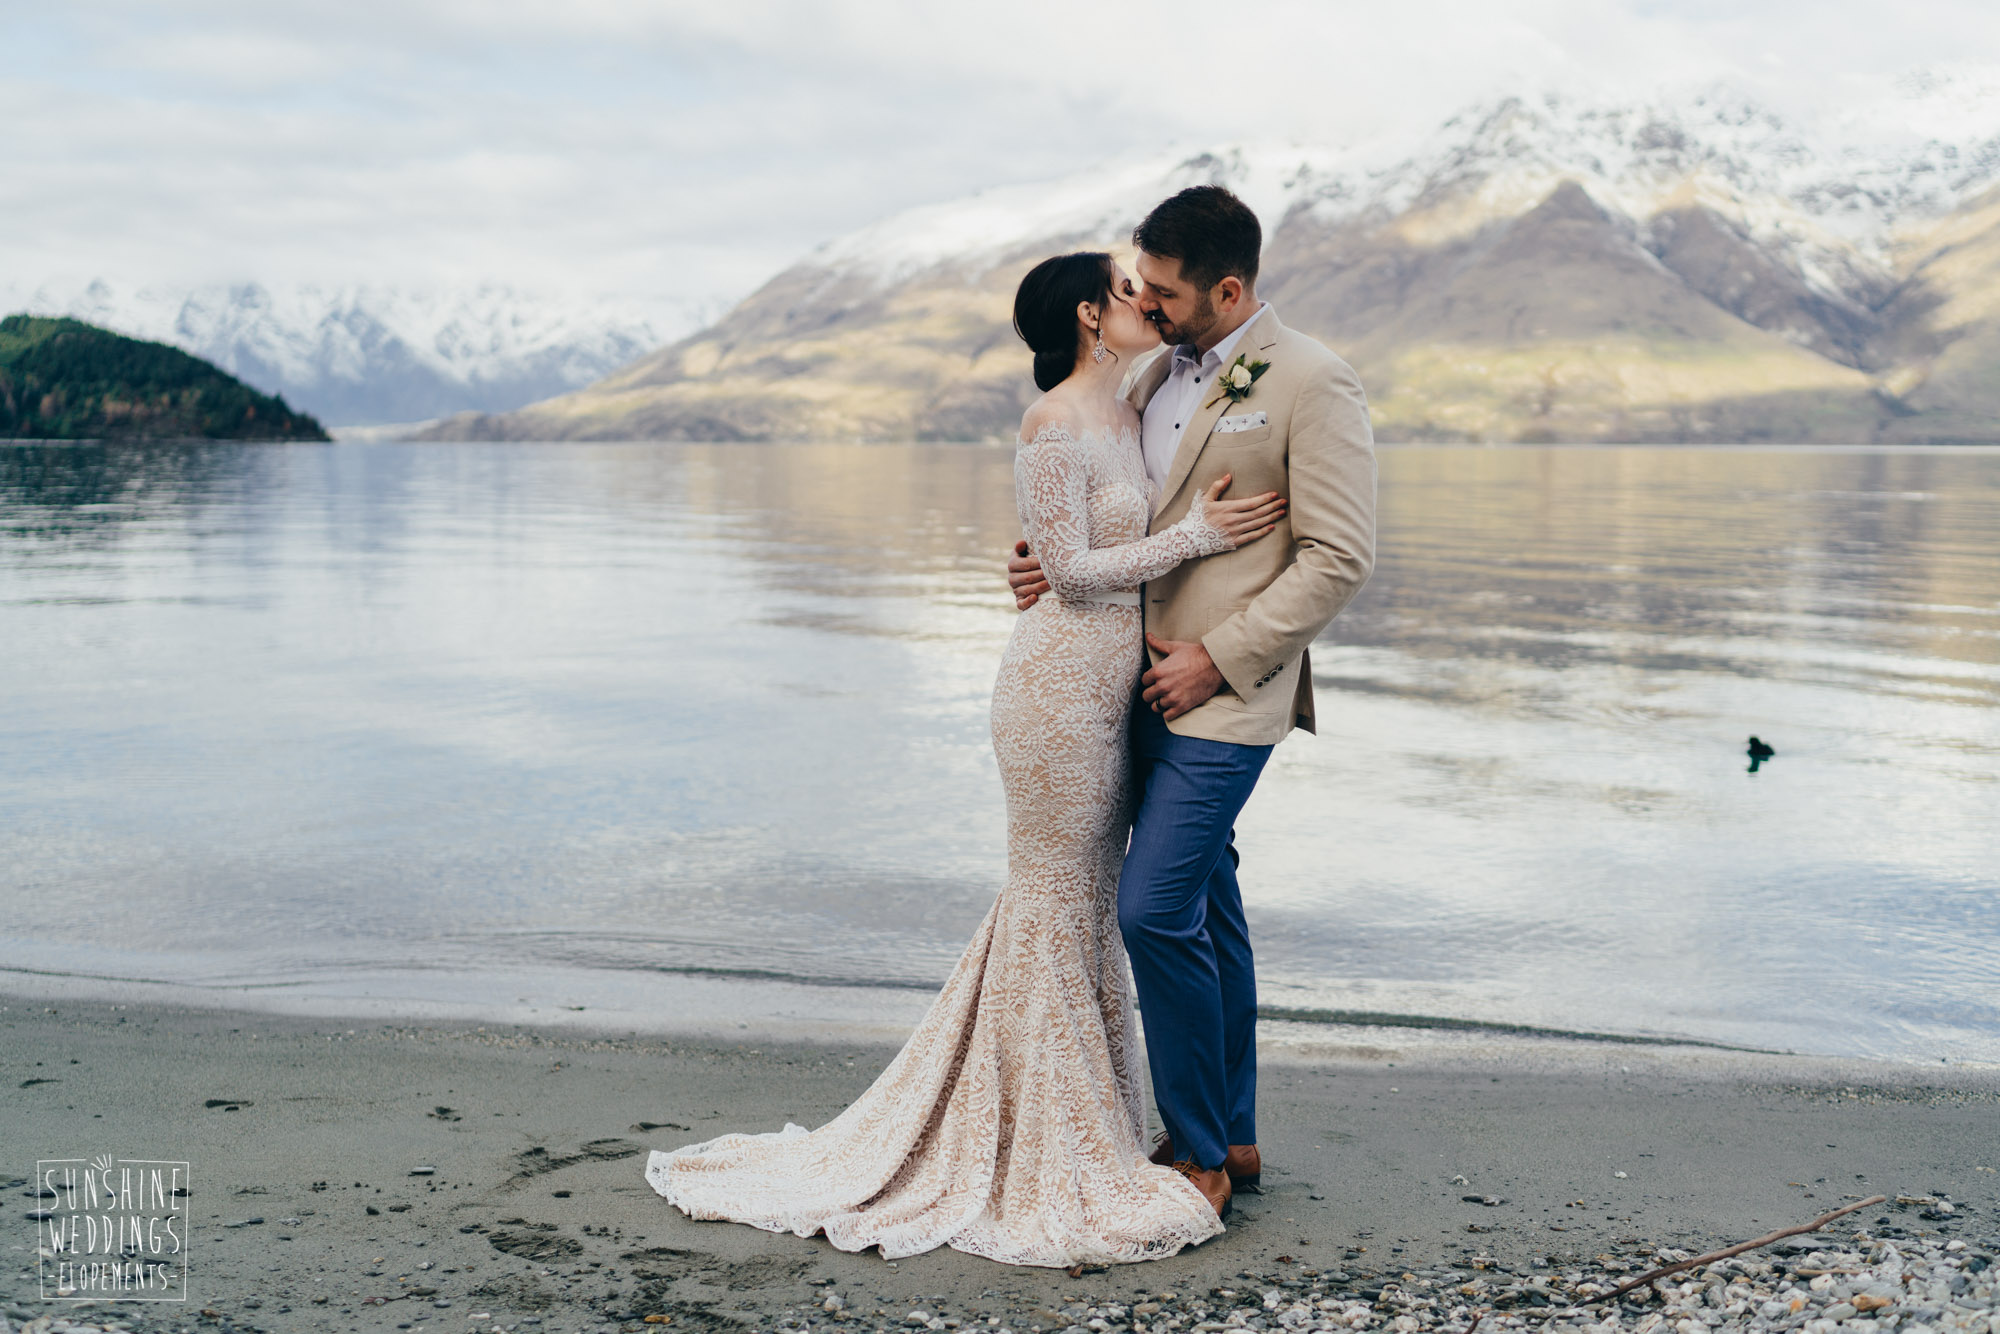 NZ destination wedding planner and photographer